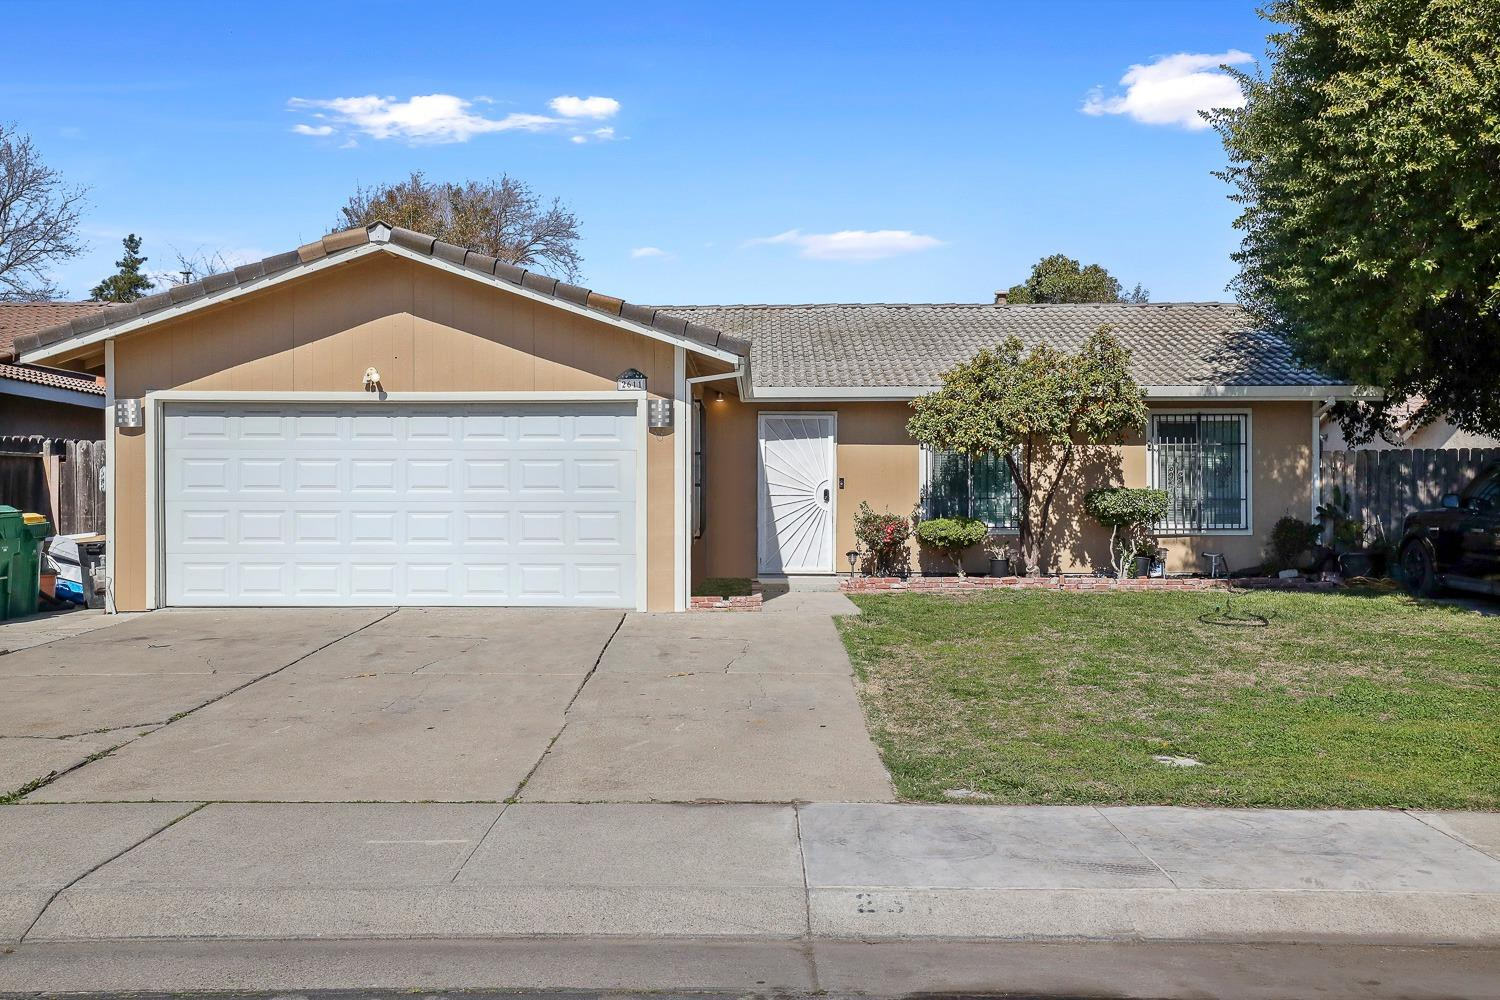 Charming 3 bd/2ba with lots of potential with this almost 1/4 acre lot. Close to shopping centers, school and minutes from hwy 99.